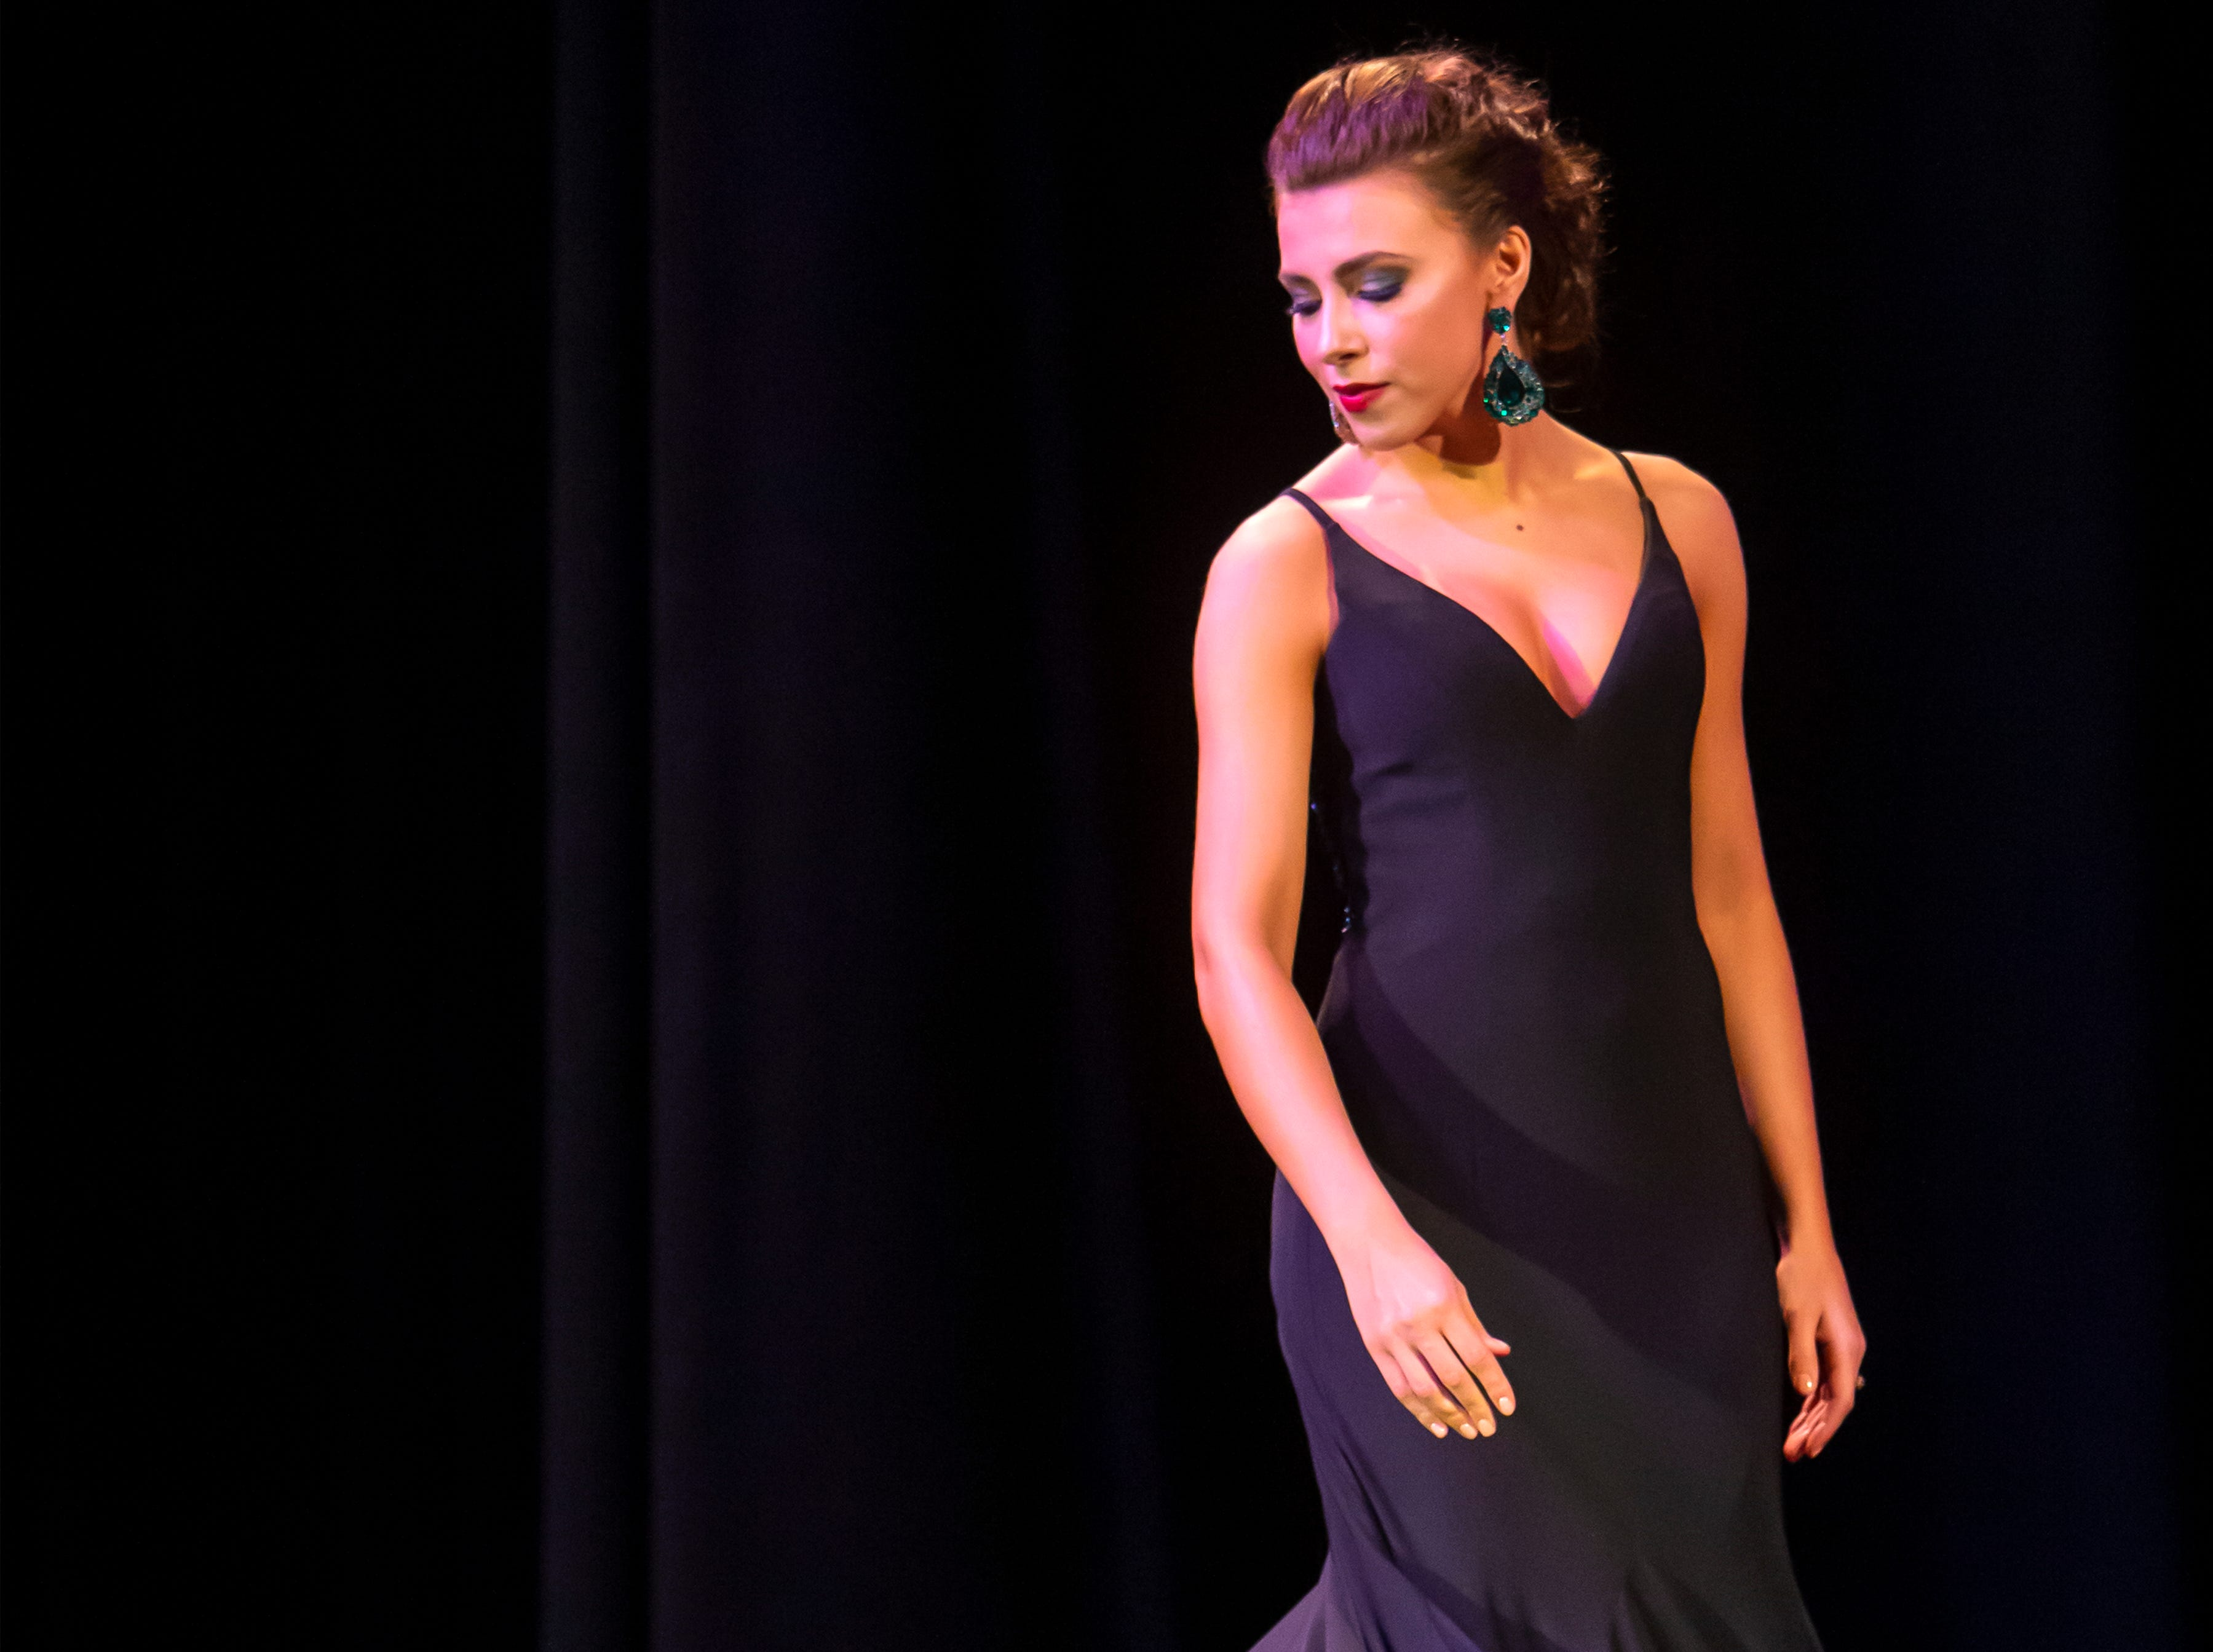 Katrina Mazier competes in the evening wear portion of the Miss Oshkosh Scholarship Pageant Saturday, March 2, 2019, at Alberta Kimball Auditorium in Oshkosh, Wis.